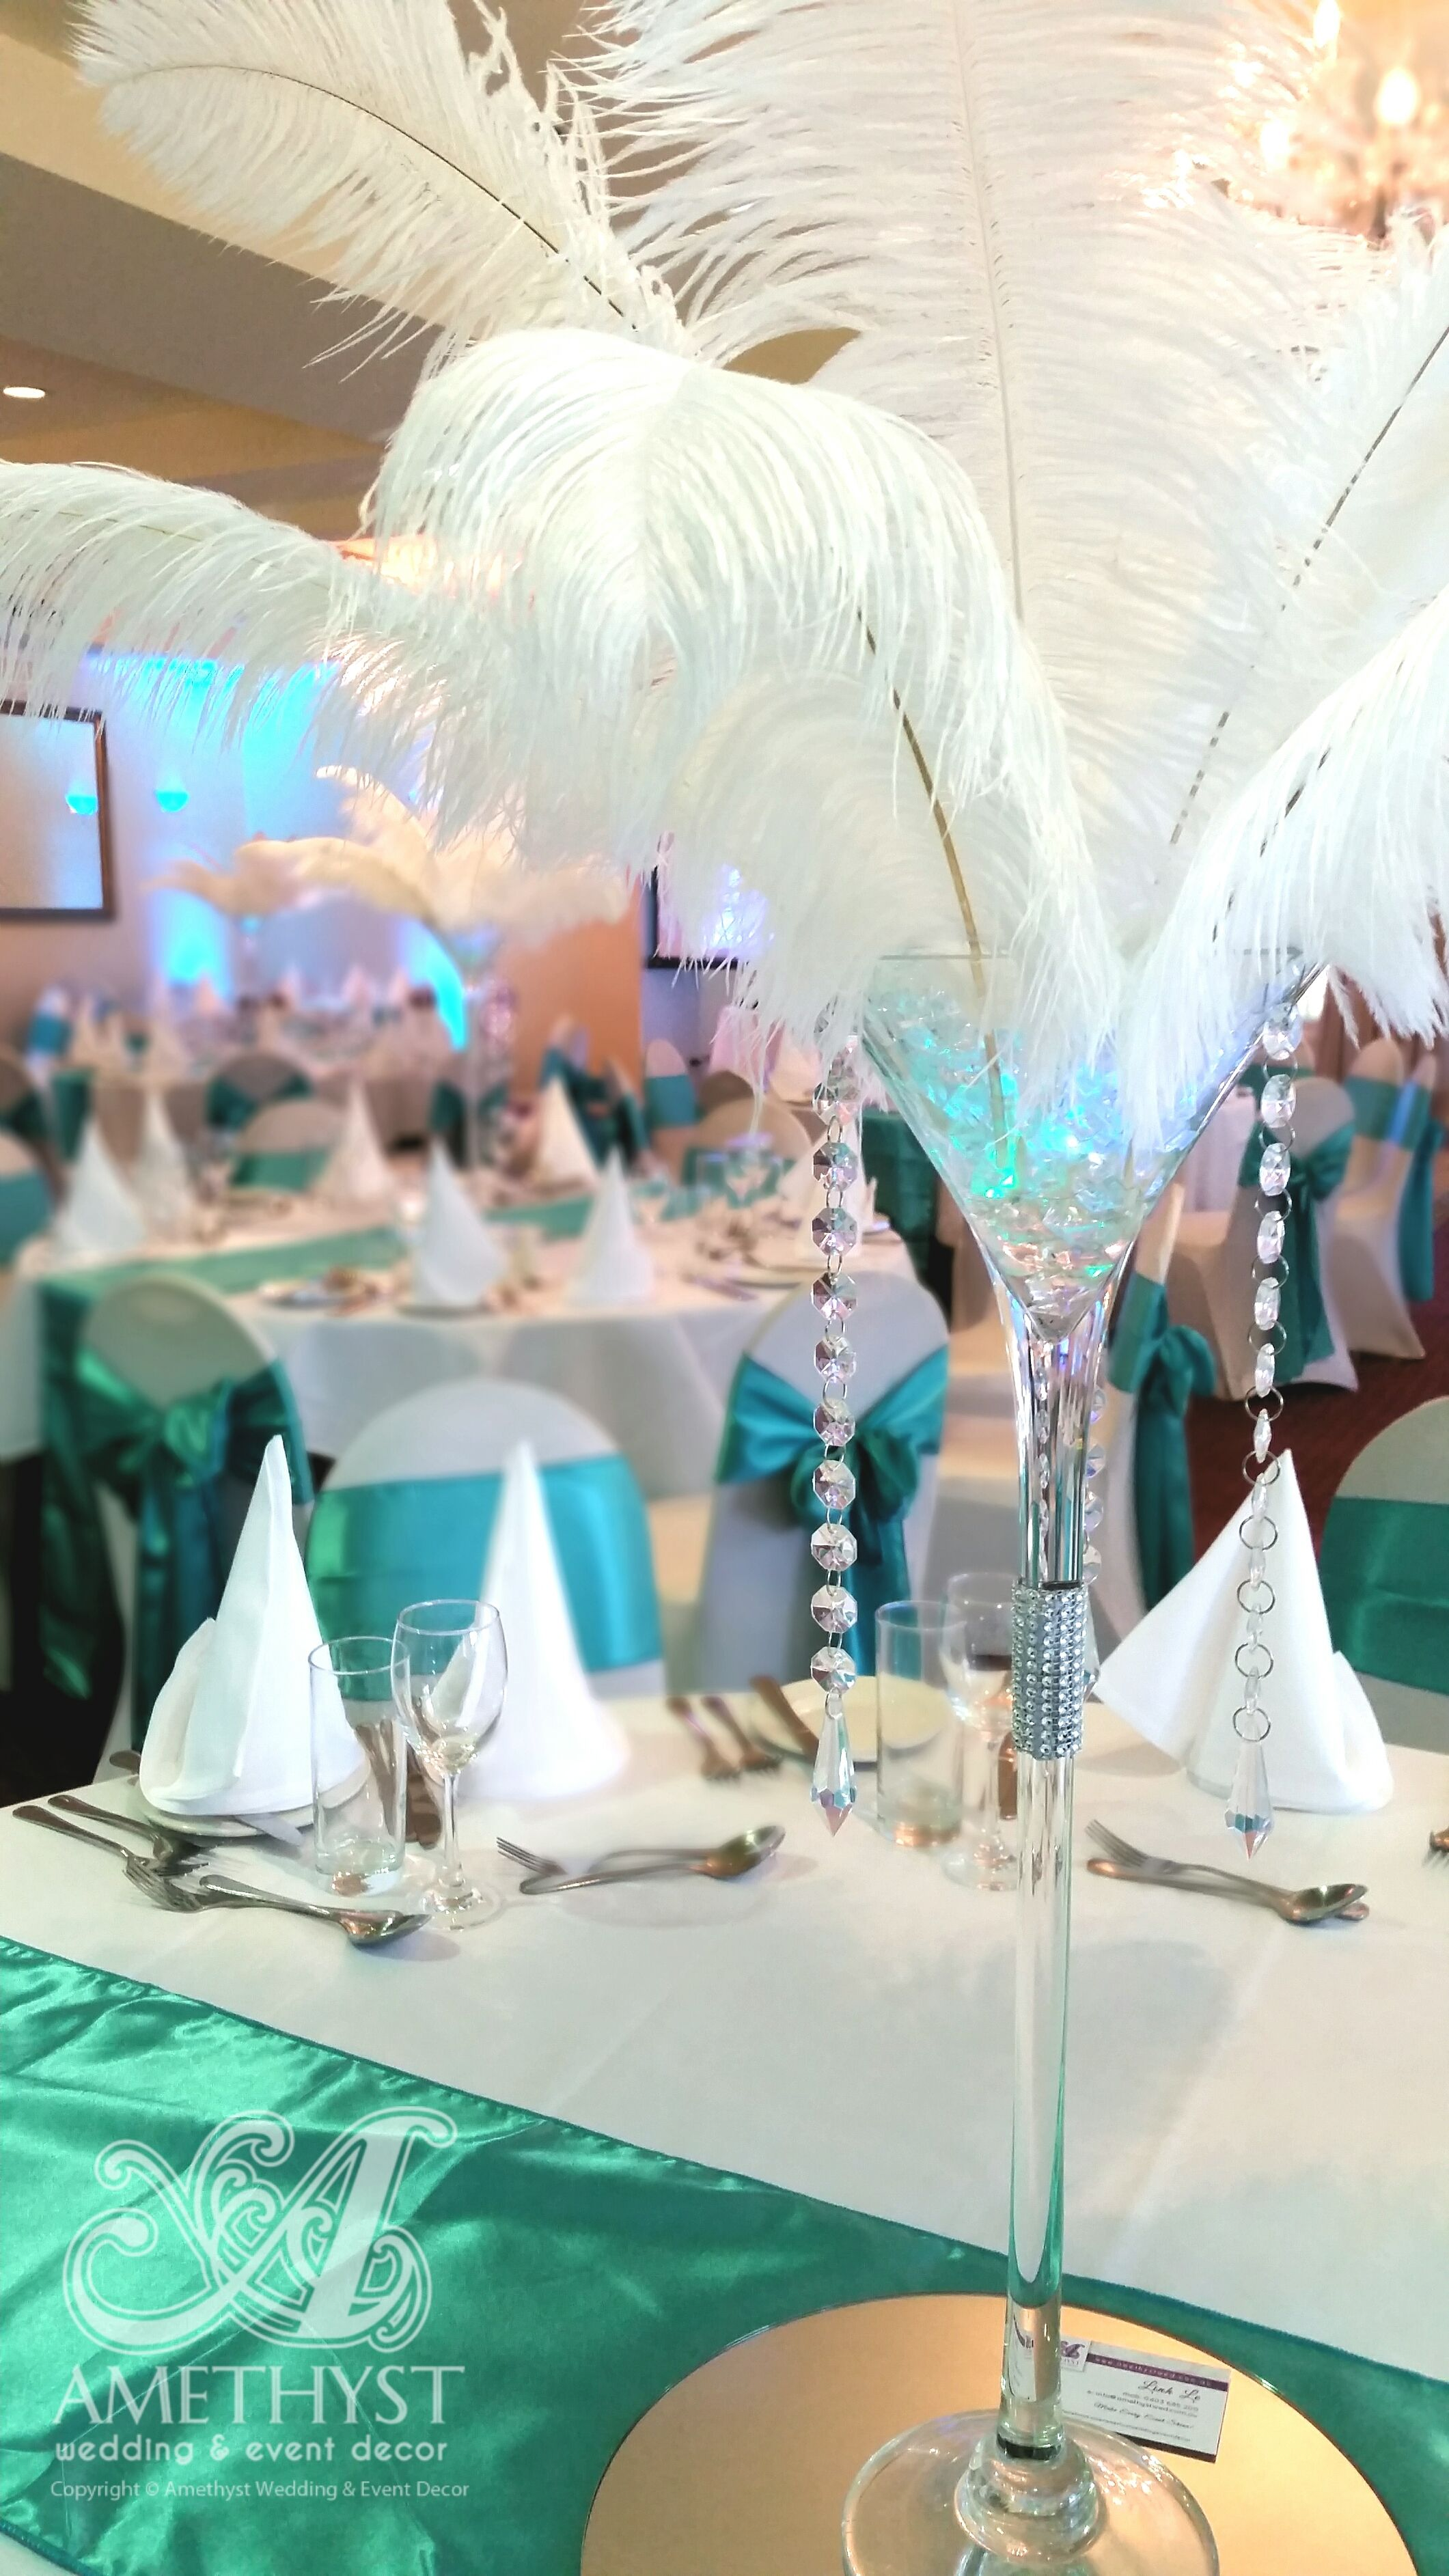 Rent ostrich feather centerpieces wedding amp party centerpiece rentals - Wedding Centerpiece White Ostrich Feathers On Martini Vase With Teal Tiffany Blue Crystals